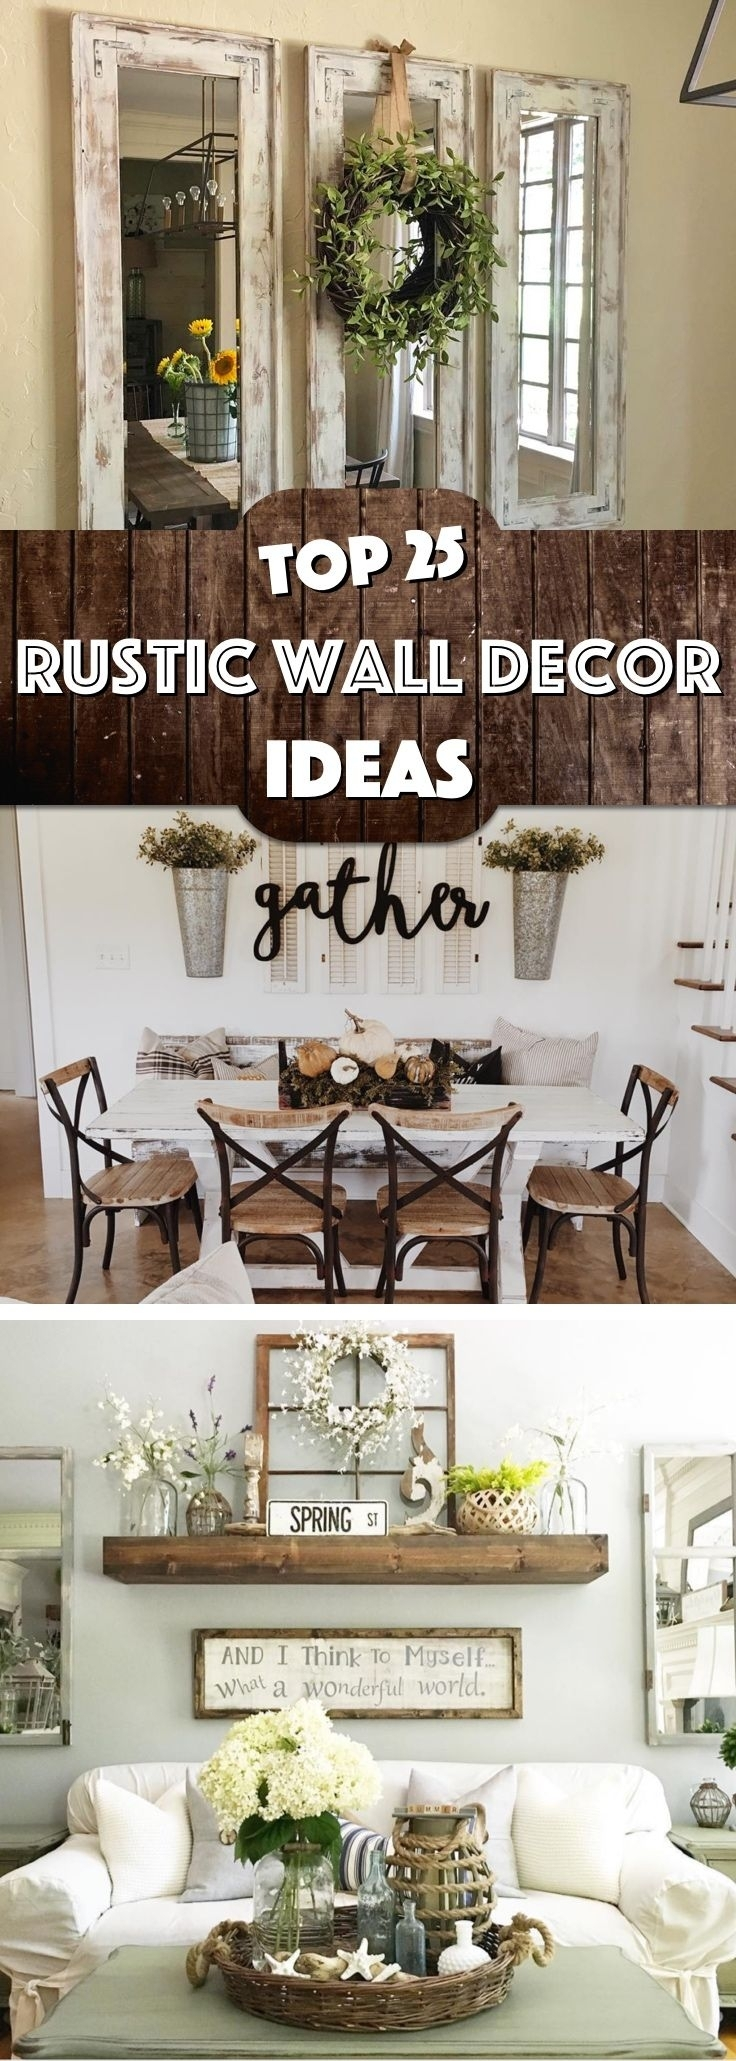 25 Must Try Rustic Wall Decor Ideas Featuring The Most Amazing Intended For Latest Rustic Wall Accents (View 15 of 15)